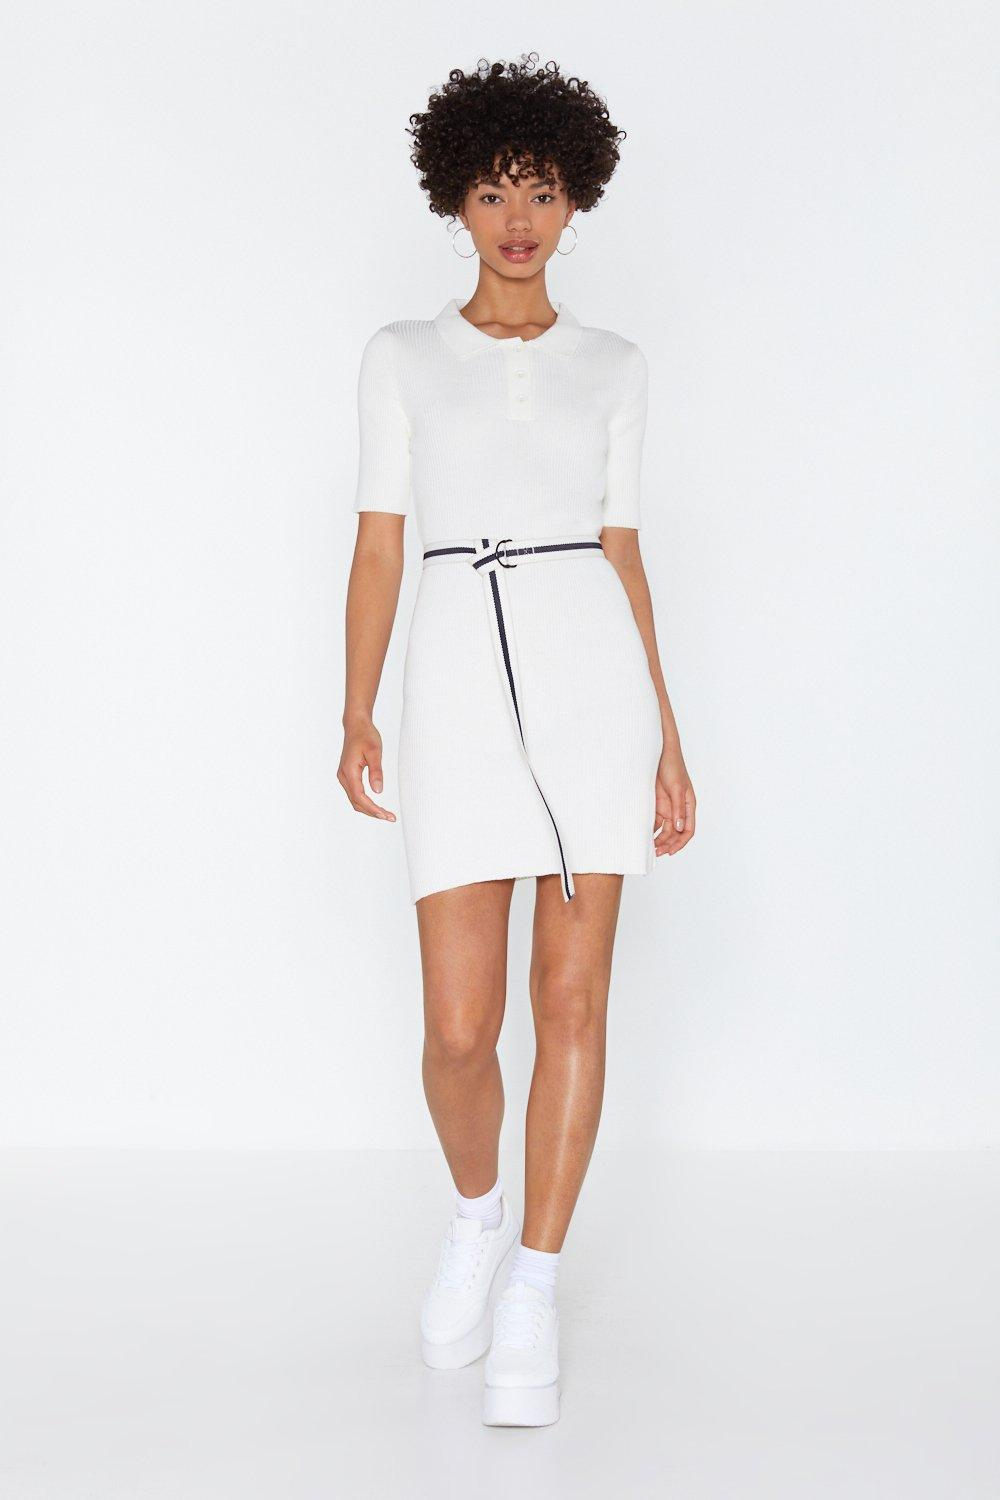 Going Polo Knit Mini Dress by Nasty Gal